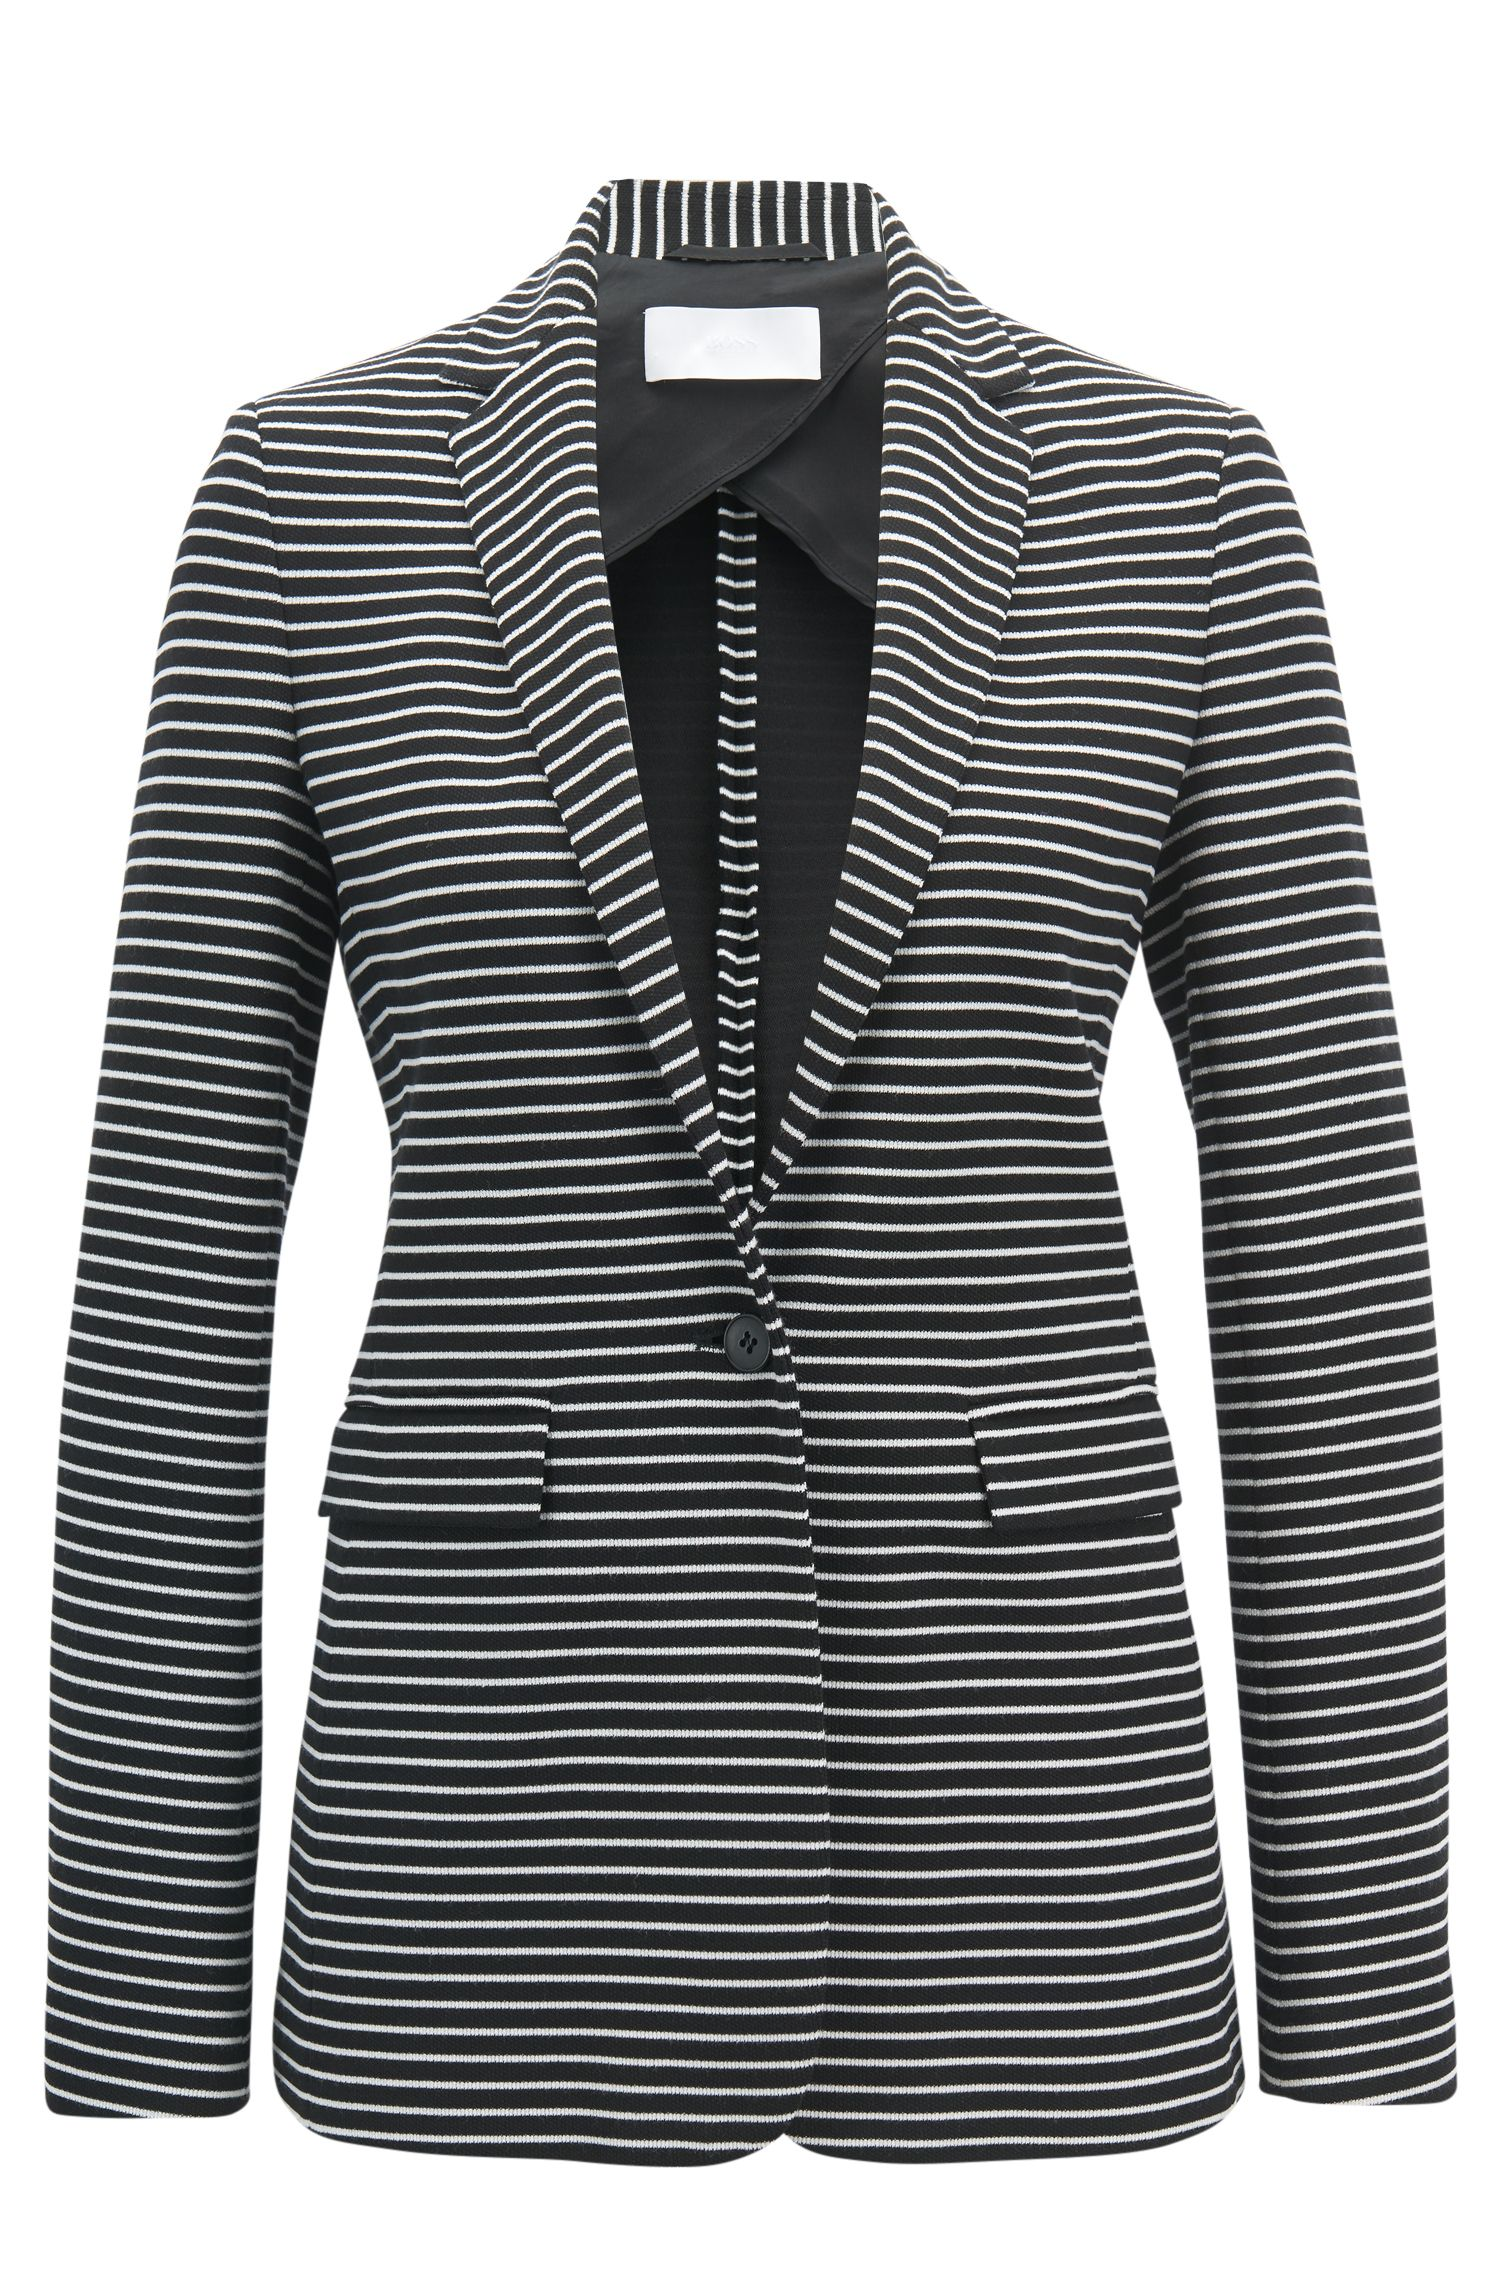 Slim-fit blazer in striped cotton-blend jersey, Patterned